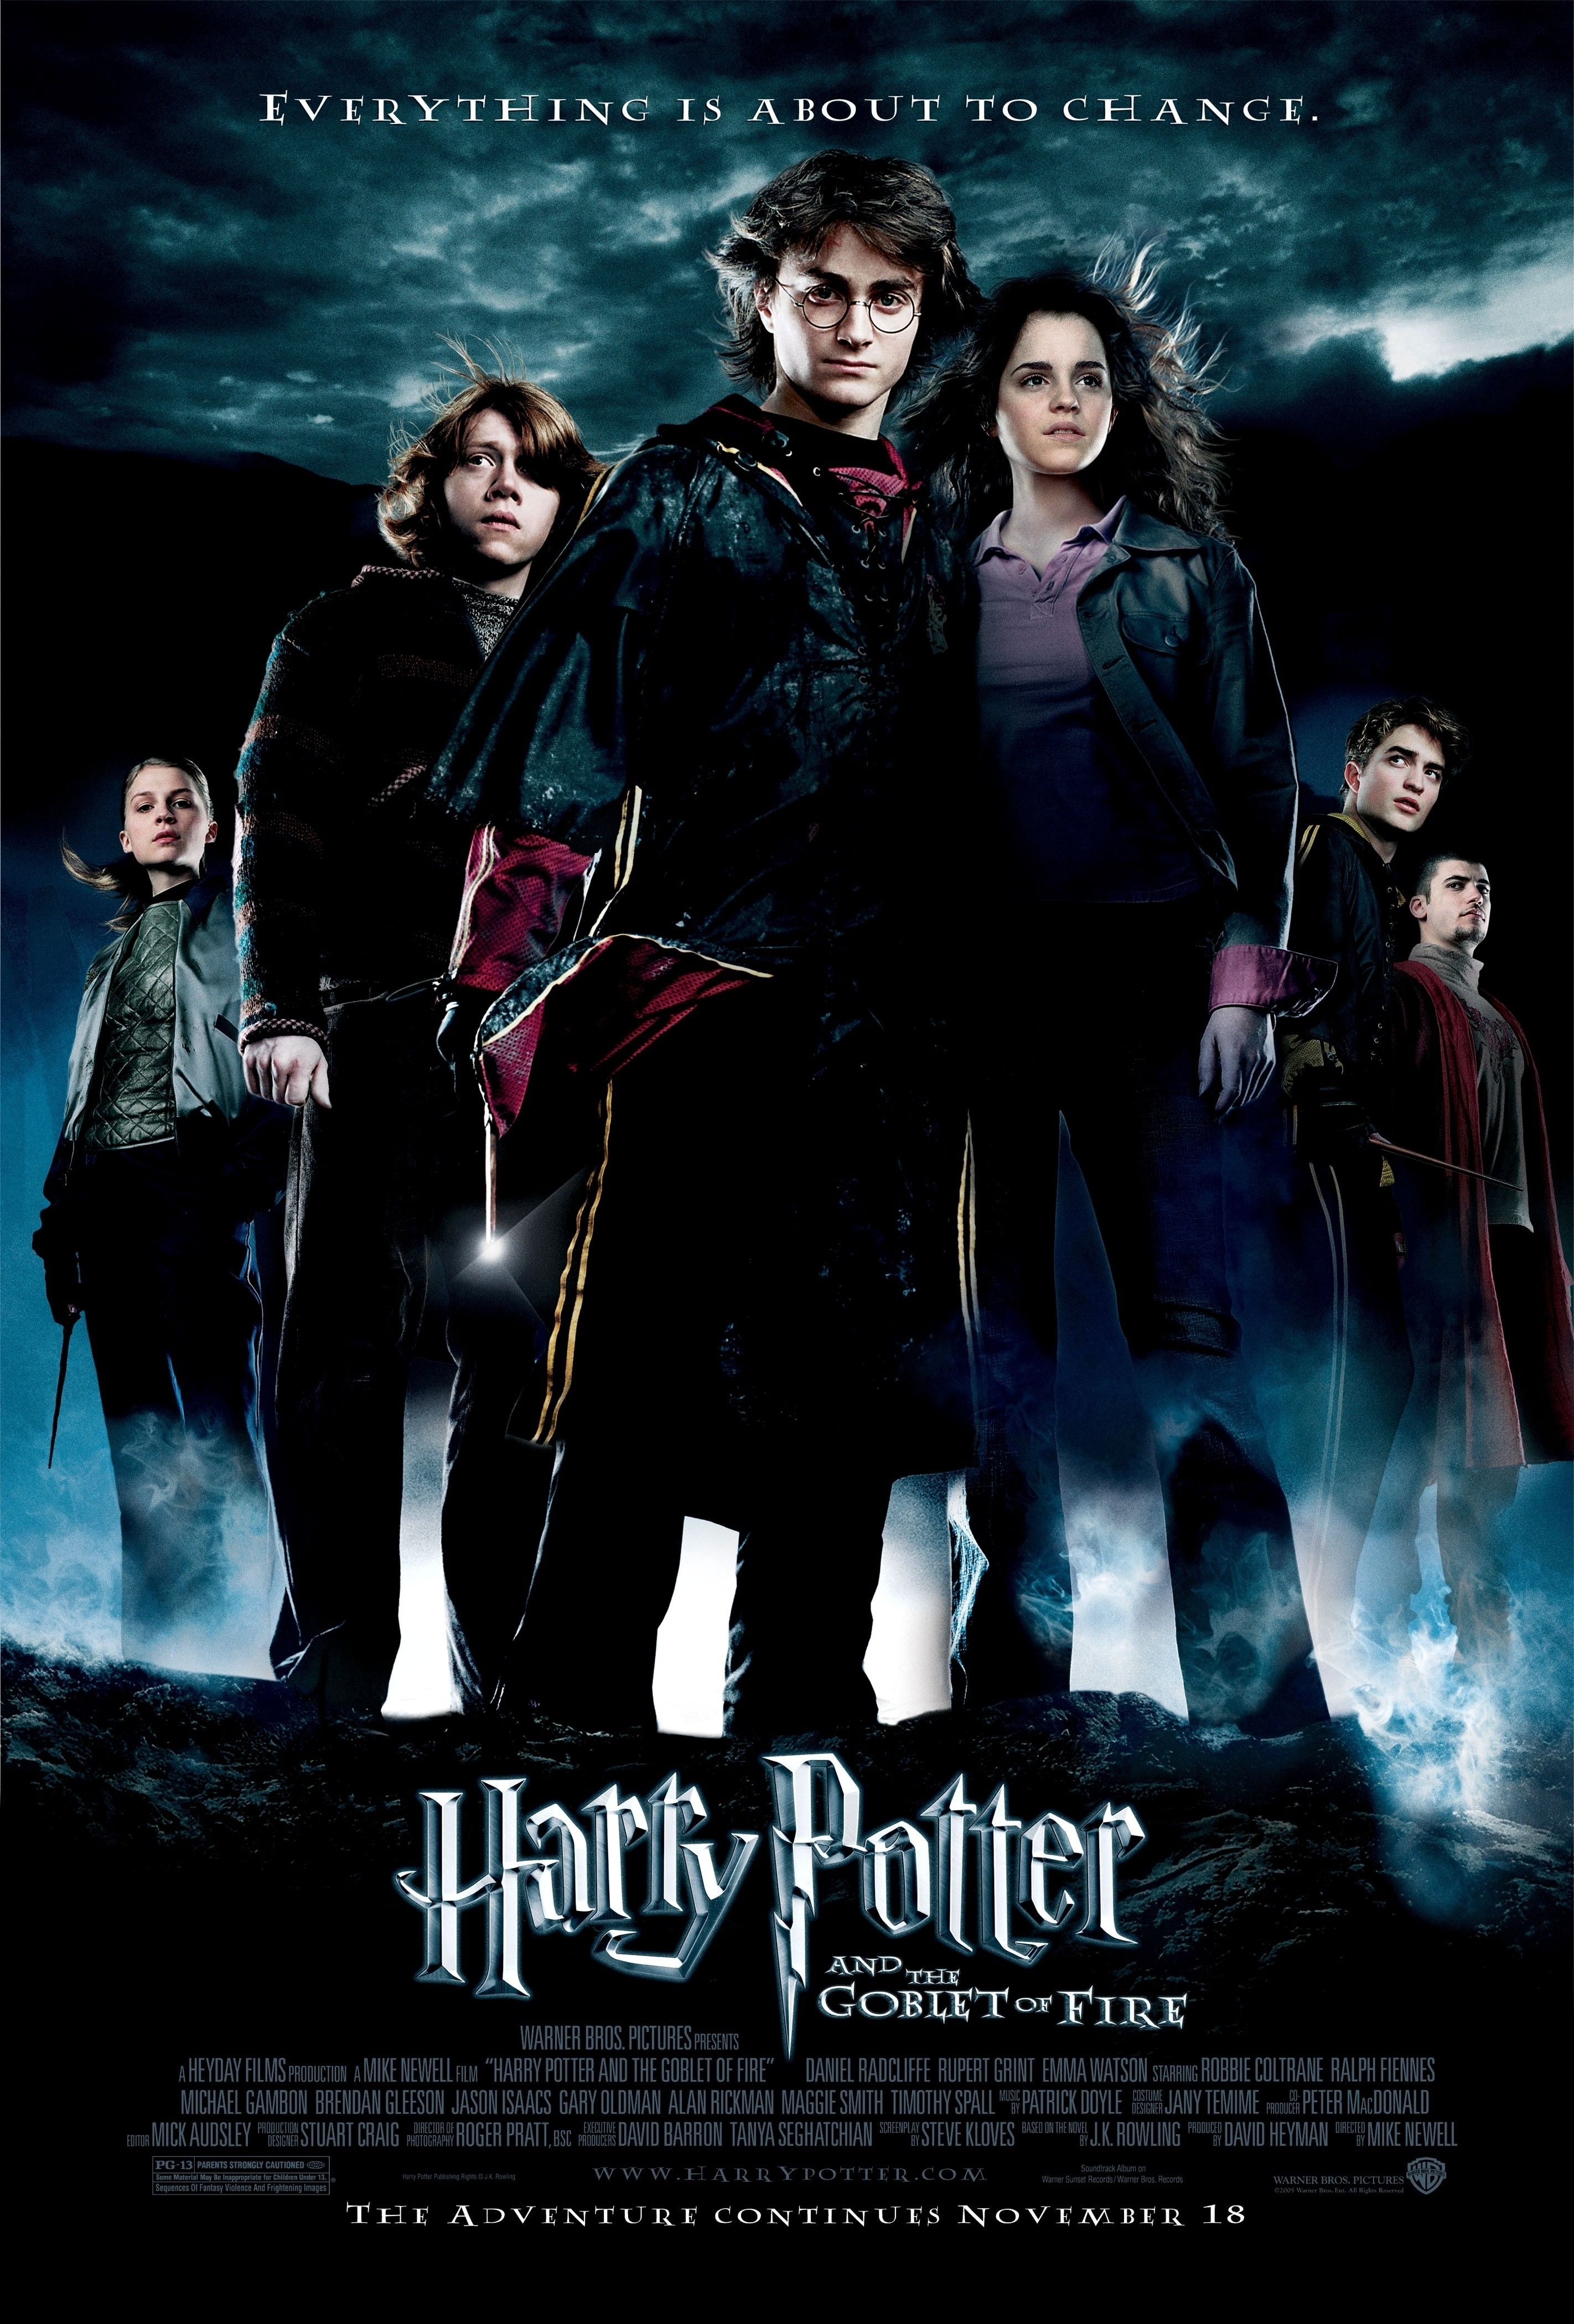 Harry Potter And The Goblet Of Fire 2005 U K U S A With